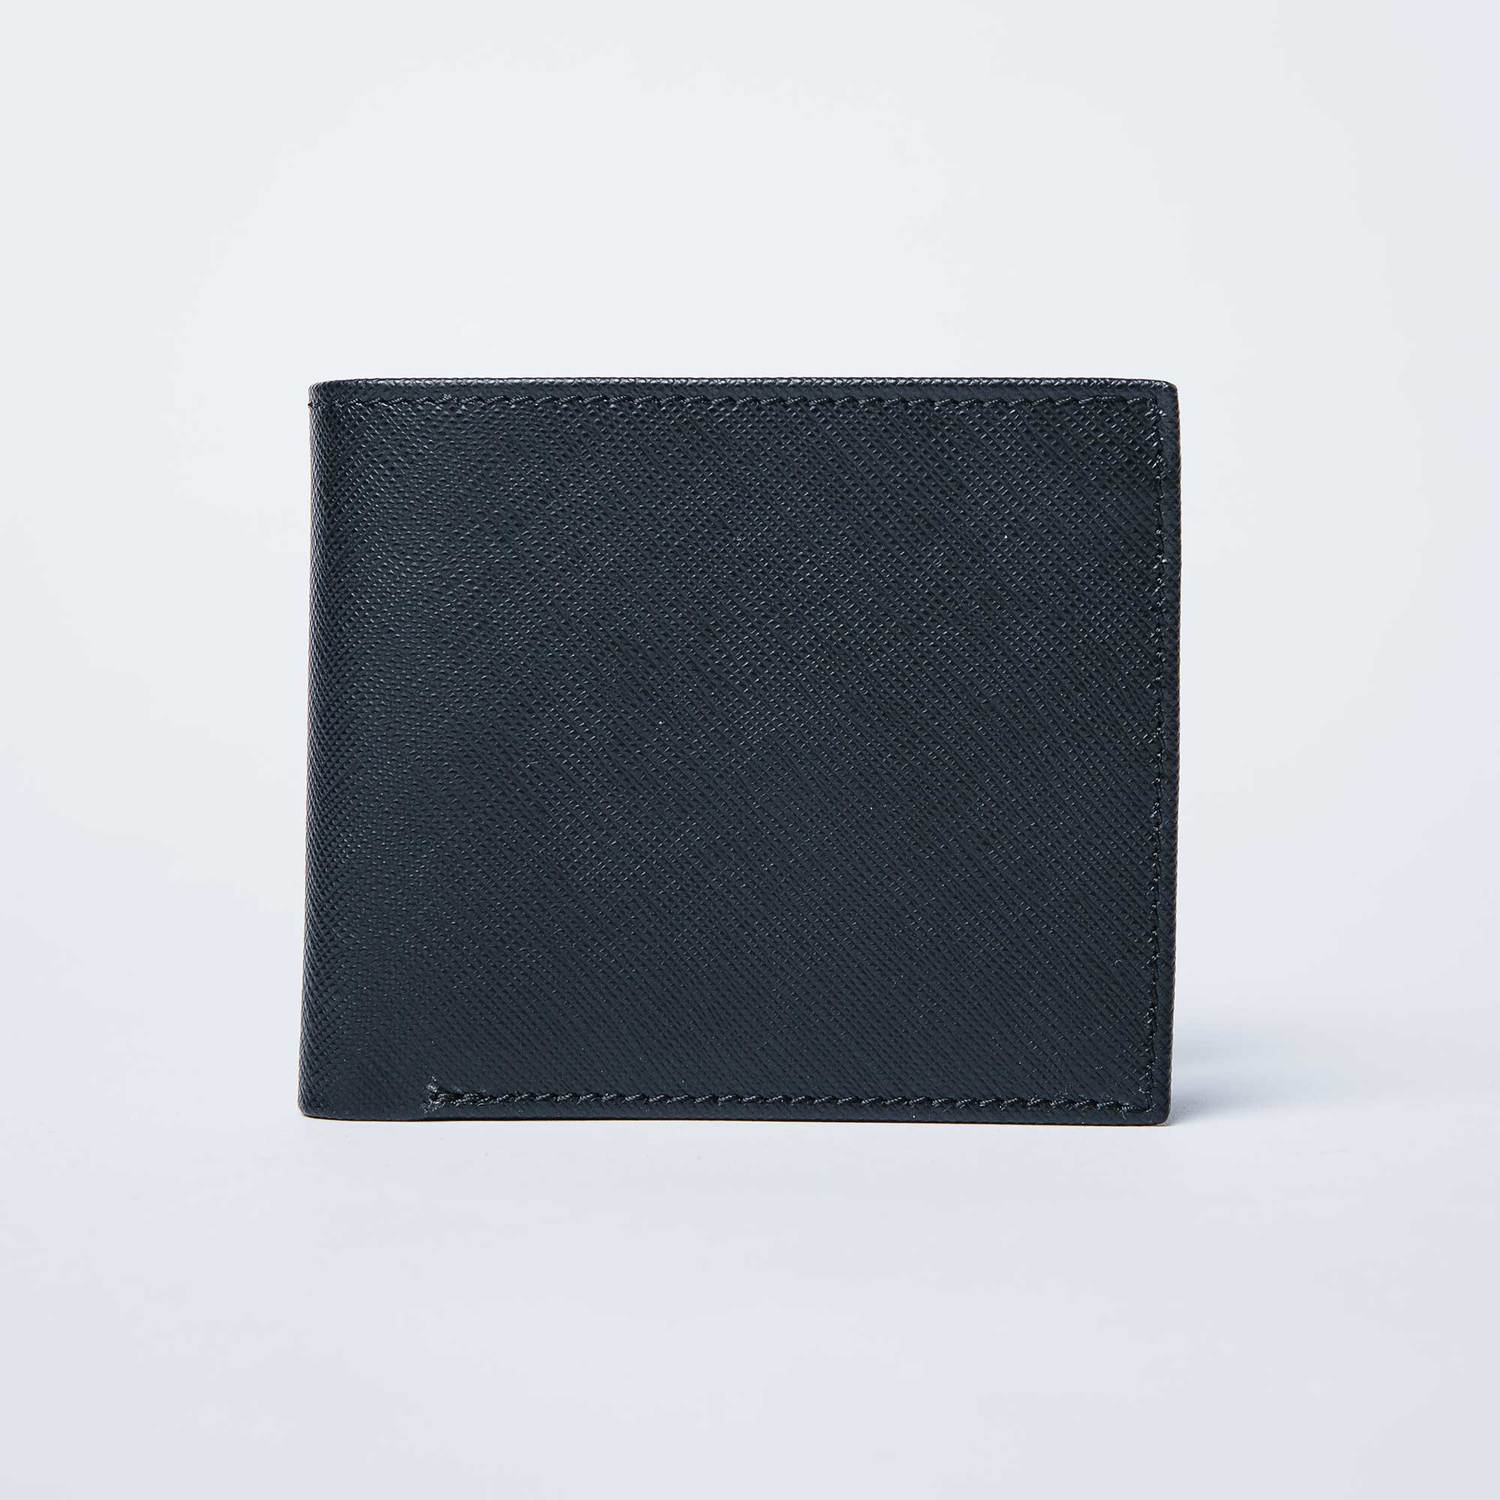 Mens Saffiano Leather Bifold Wallet In Black by Dstld